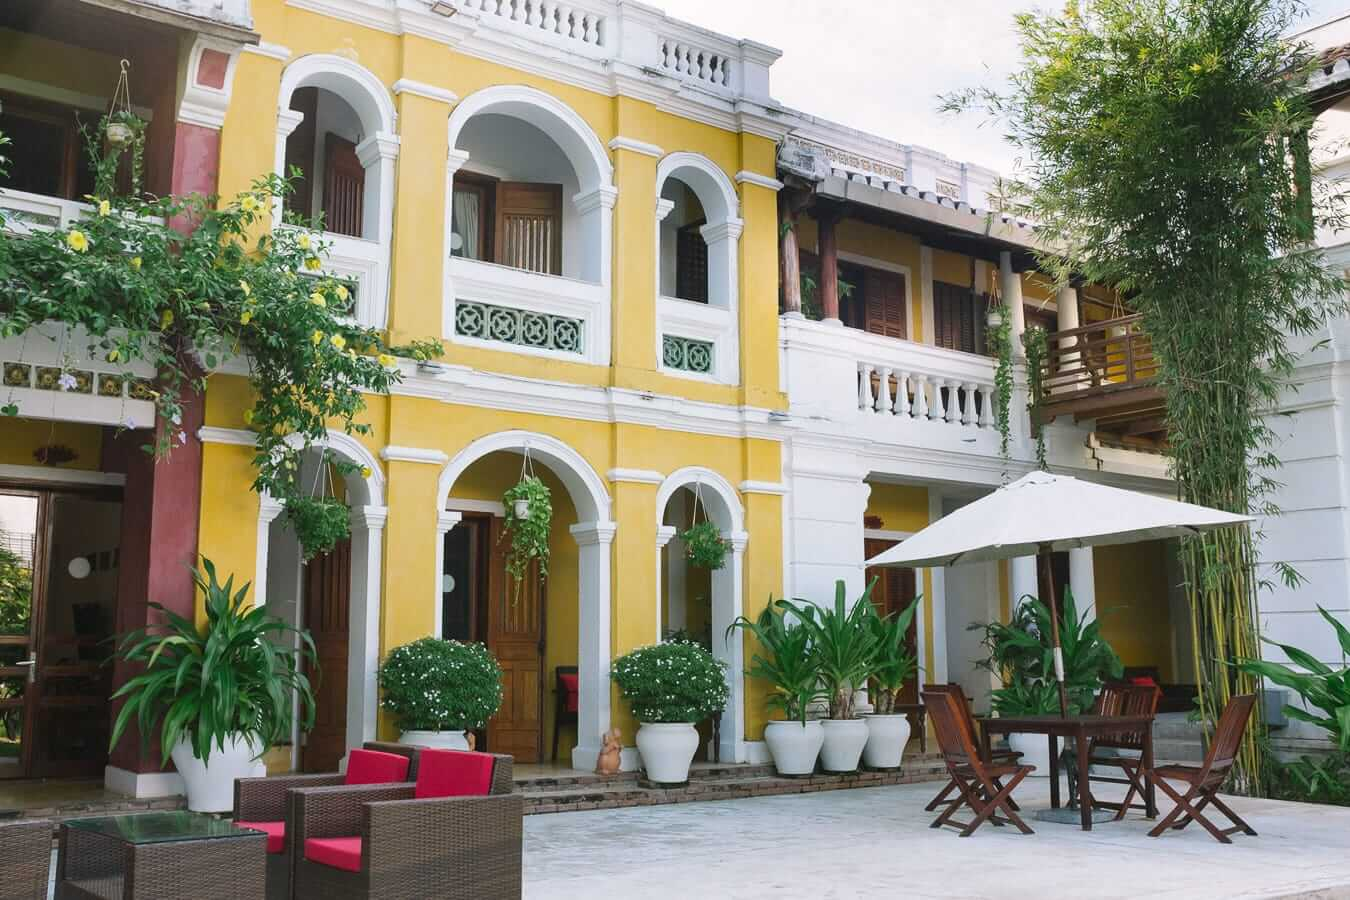 Ha An Hotel: Best Hoi An hotels